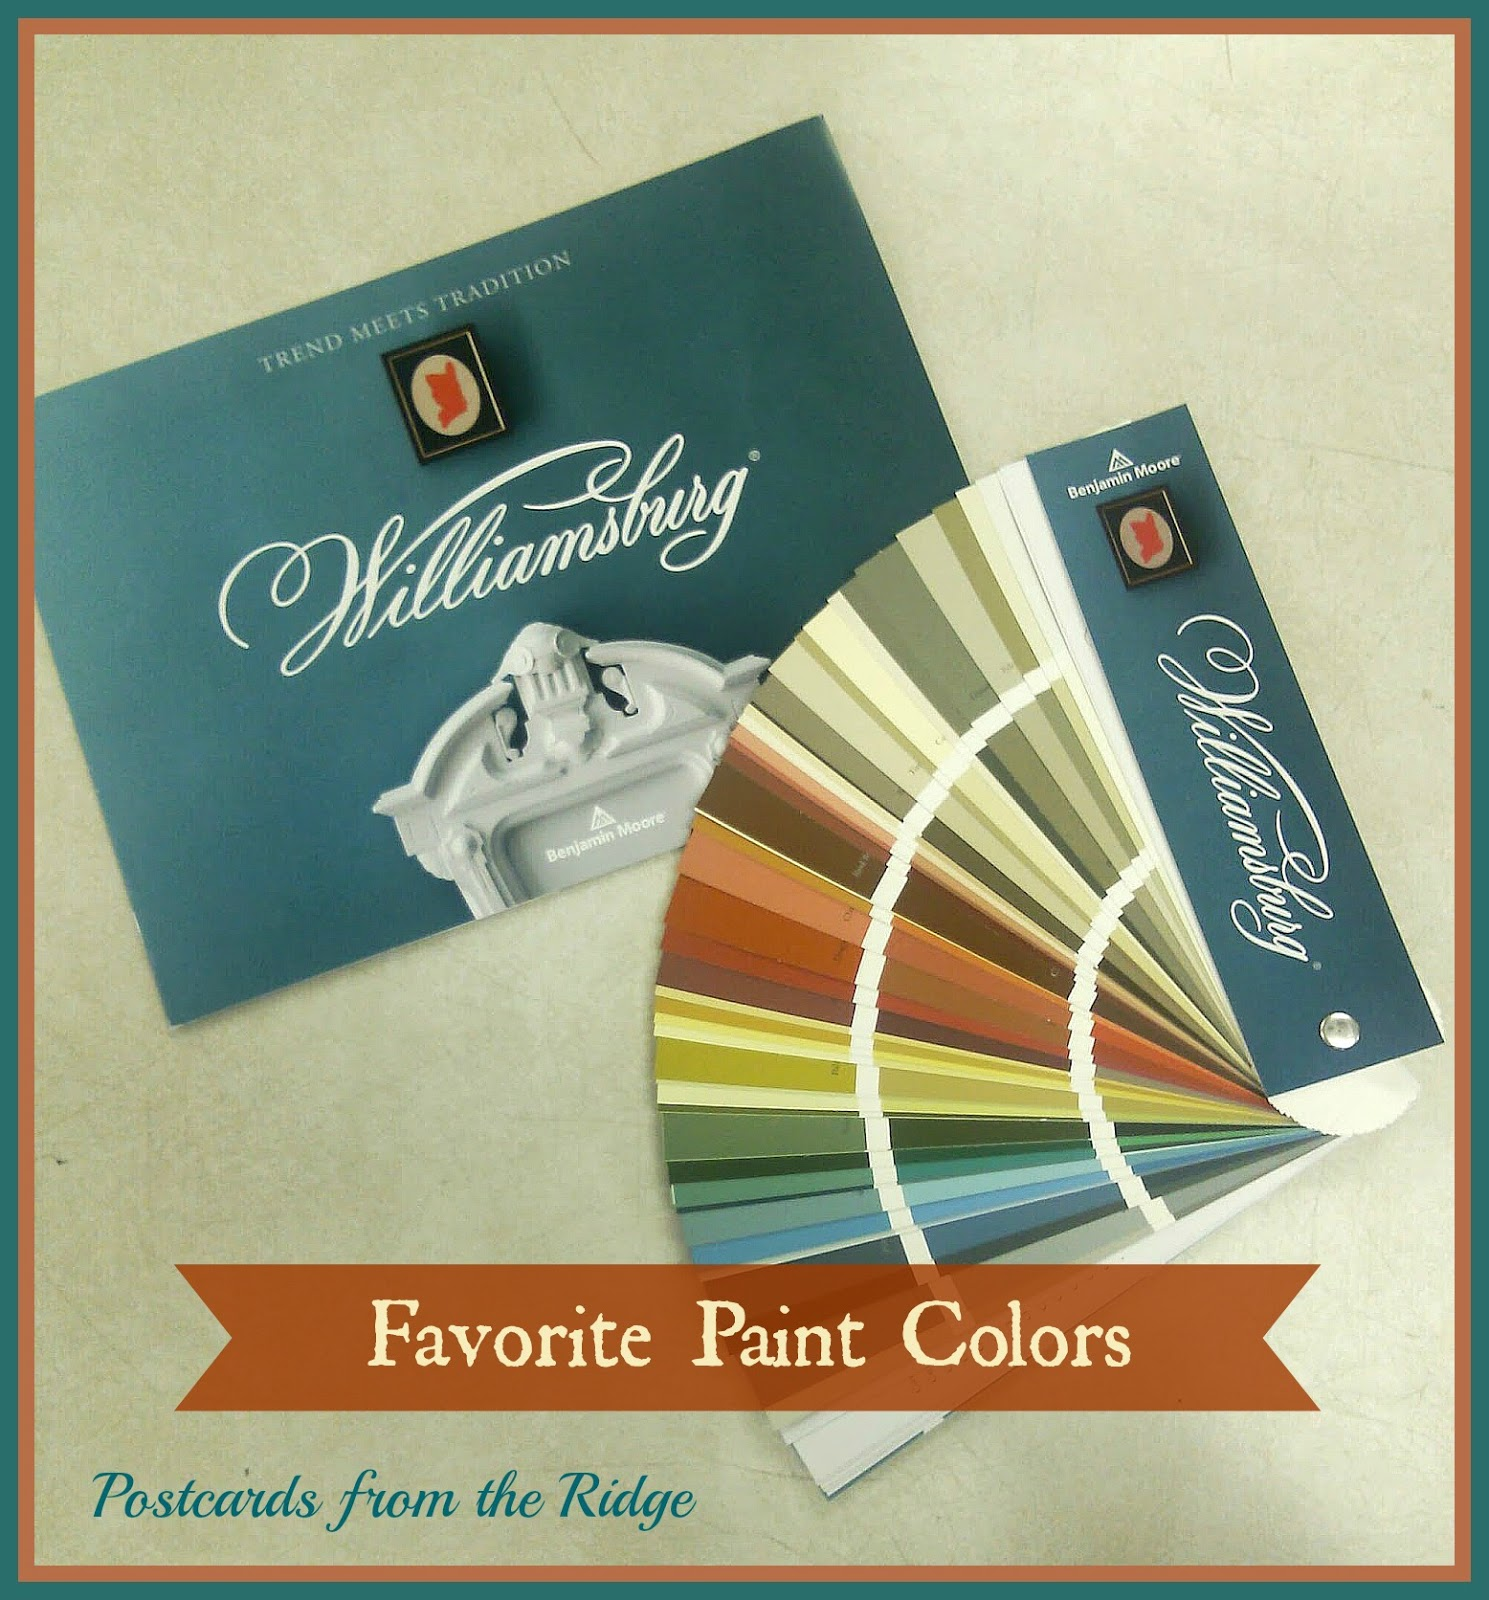 Favorite Paint Colors ~ The New Williamsburg Collection From .